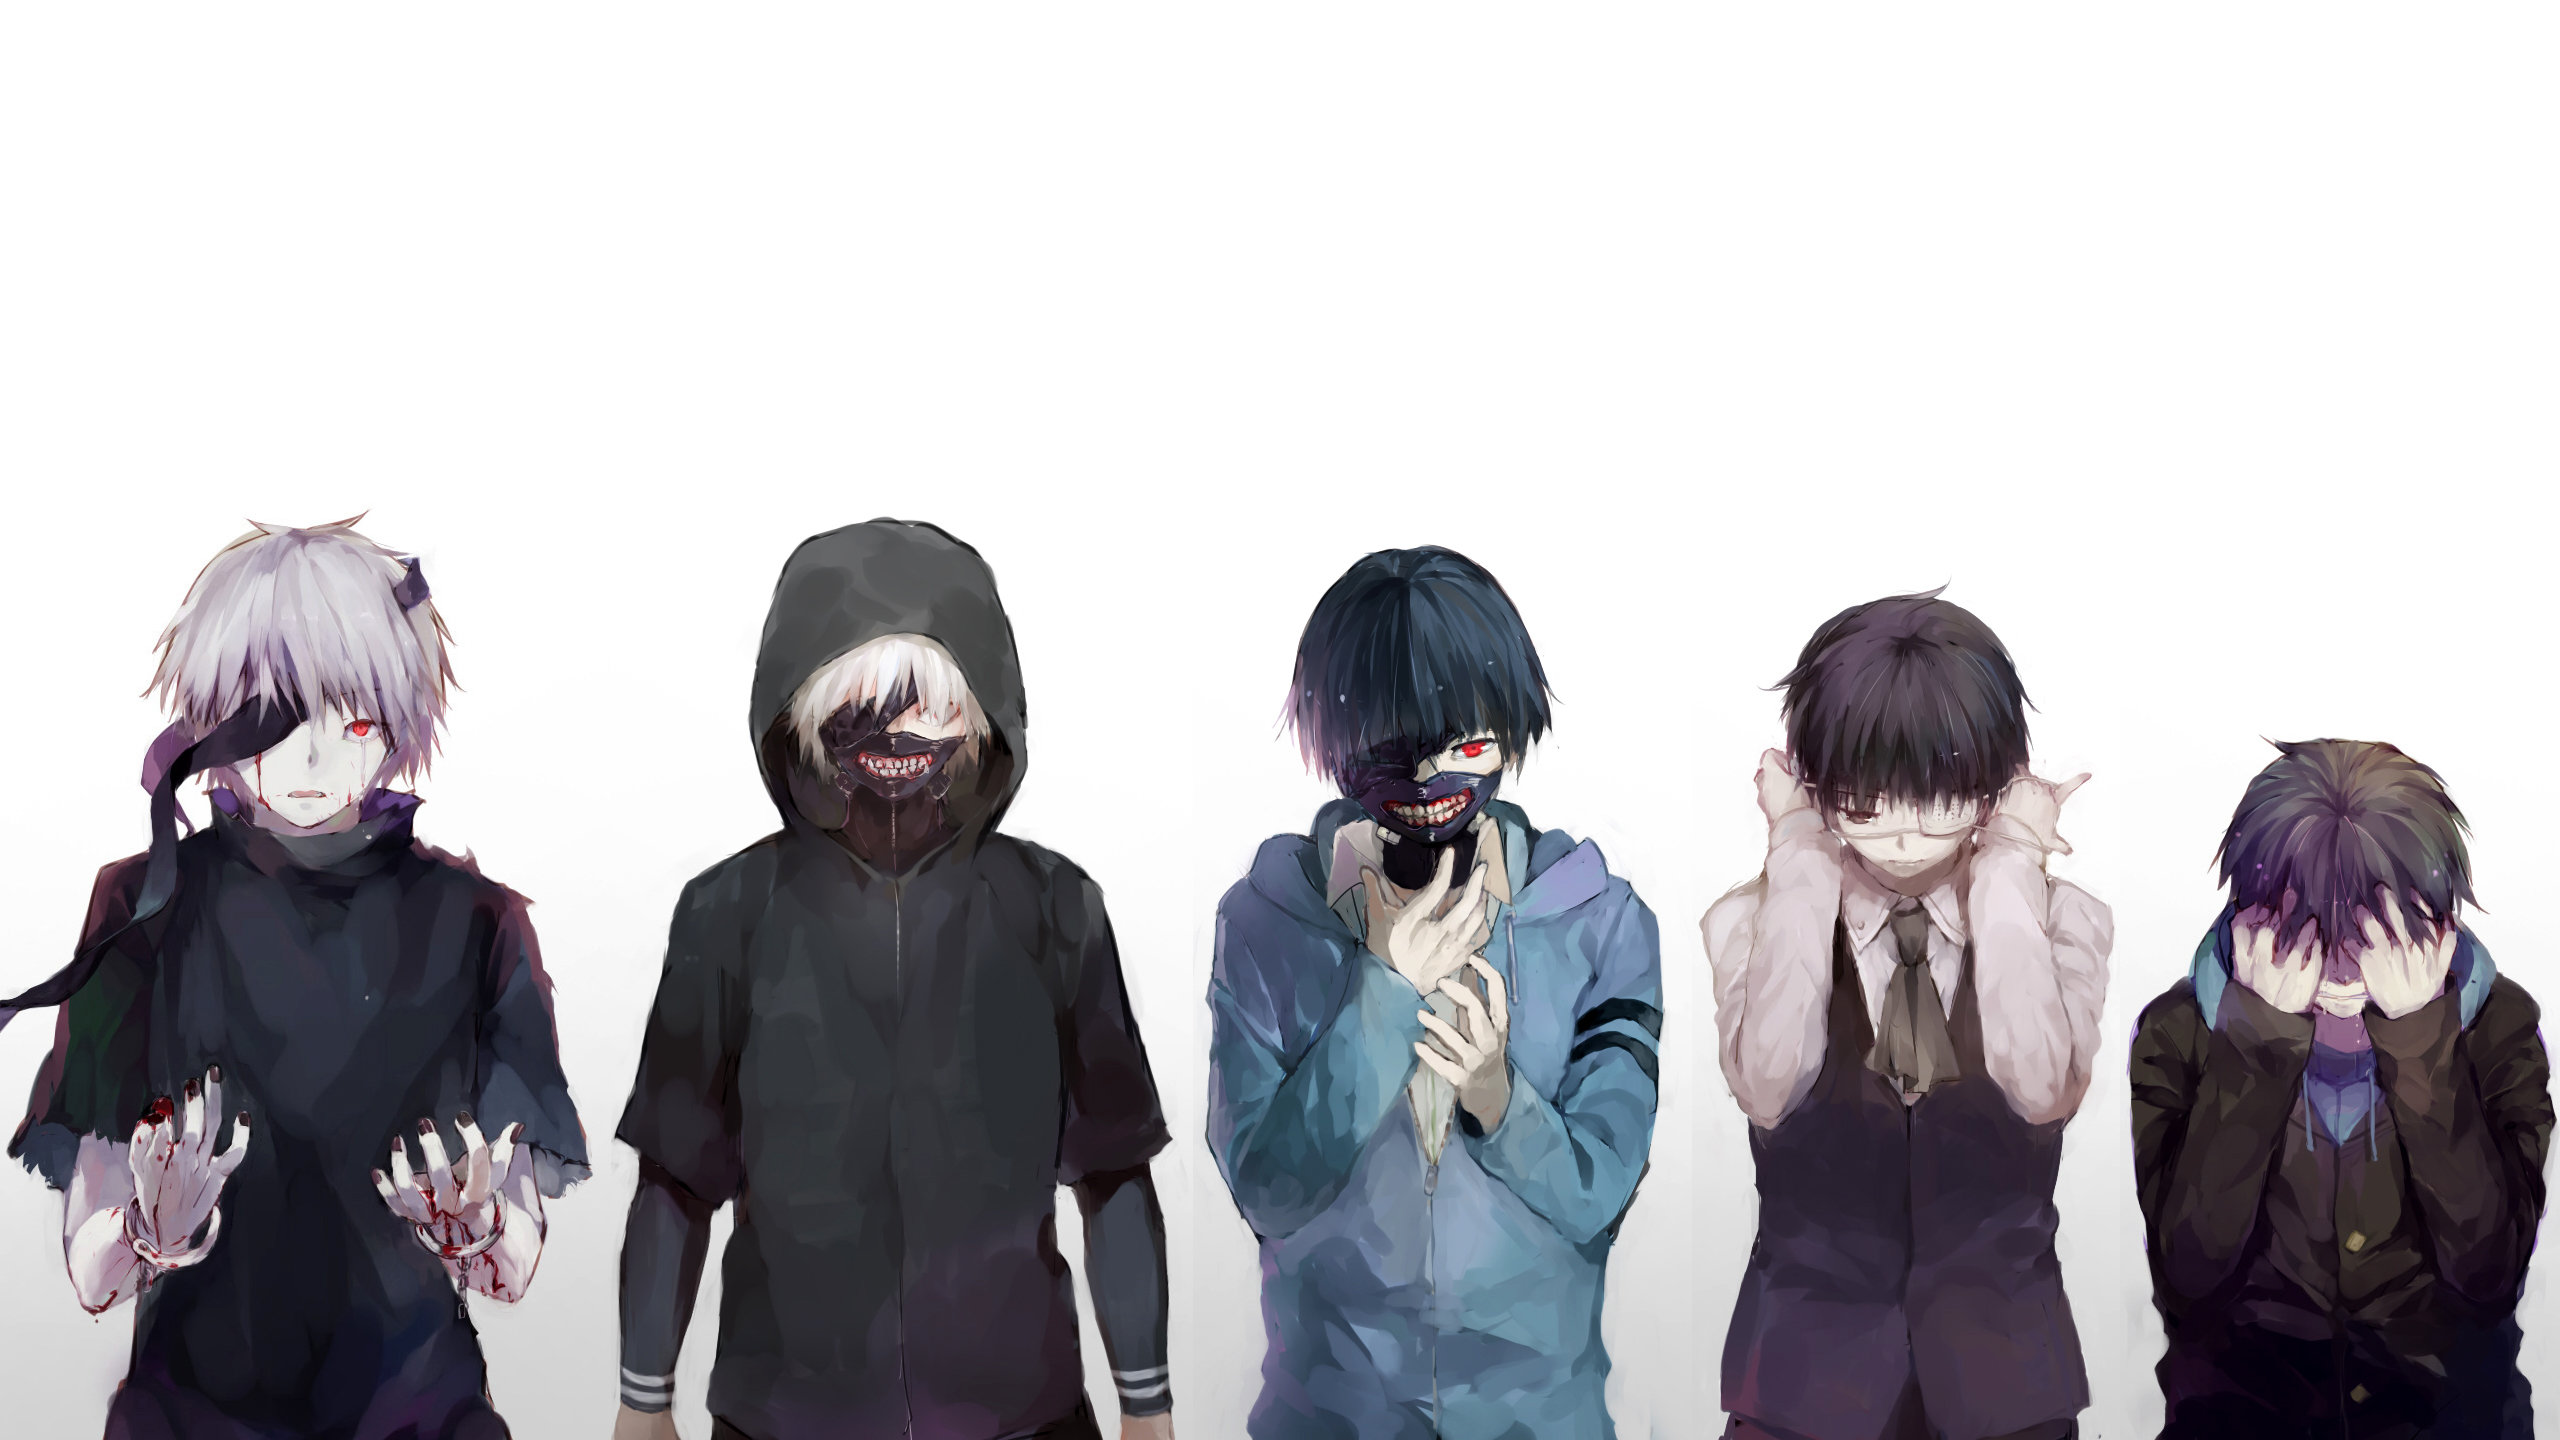 Download hd 2560x1440 Ken Kaneki PC background ID:150012 for free